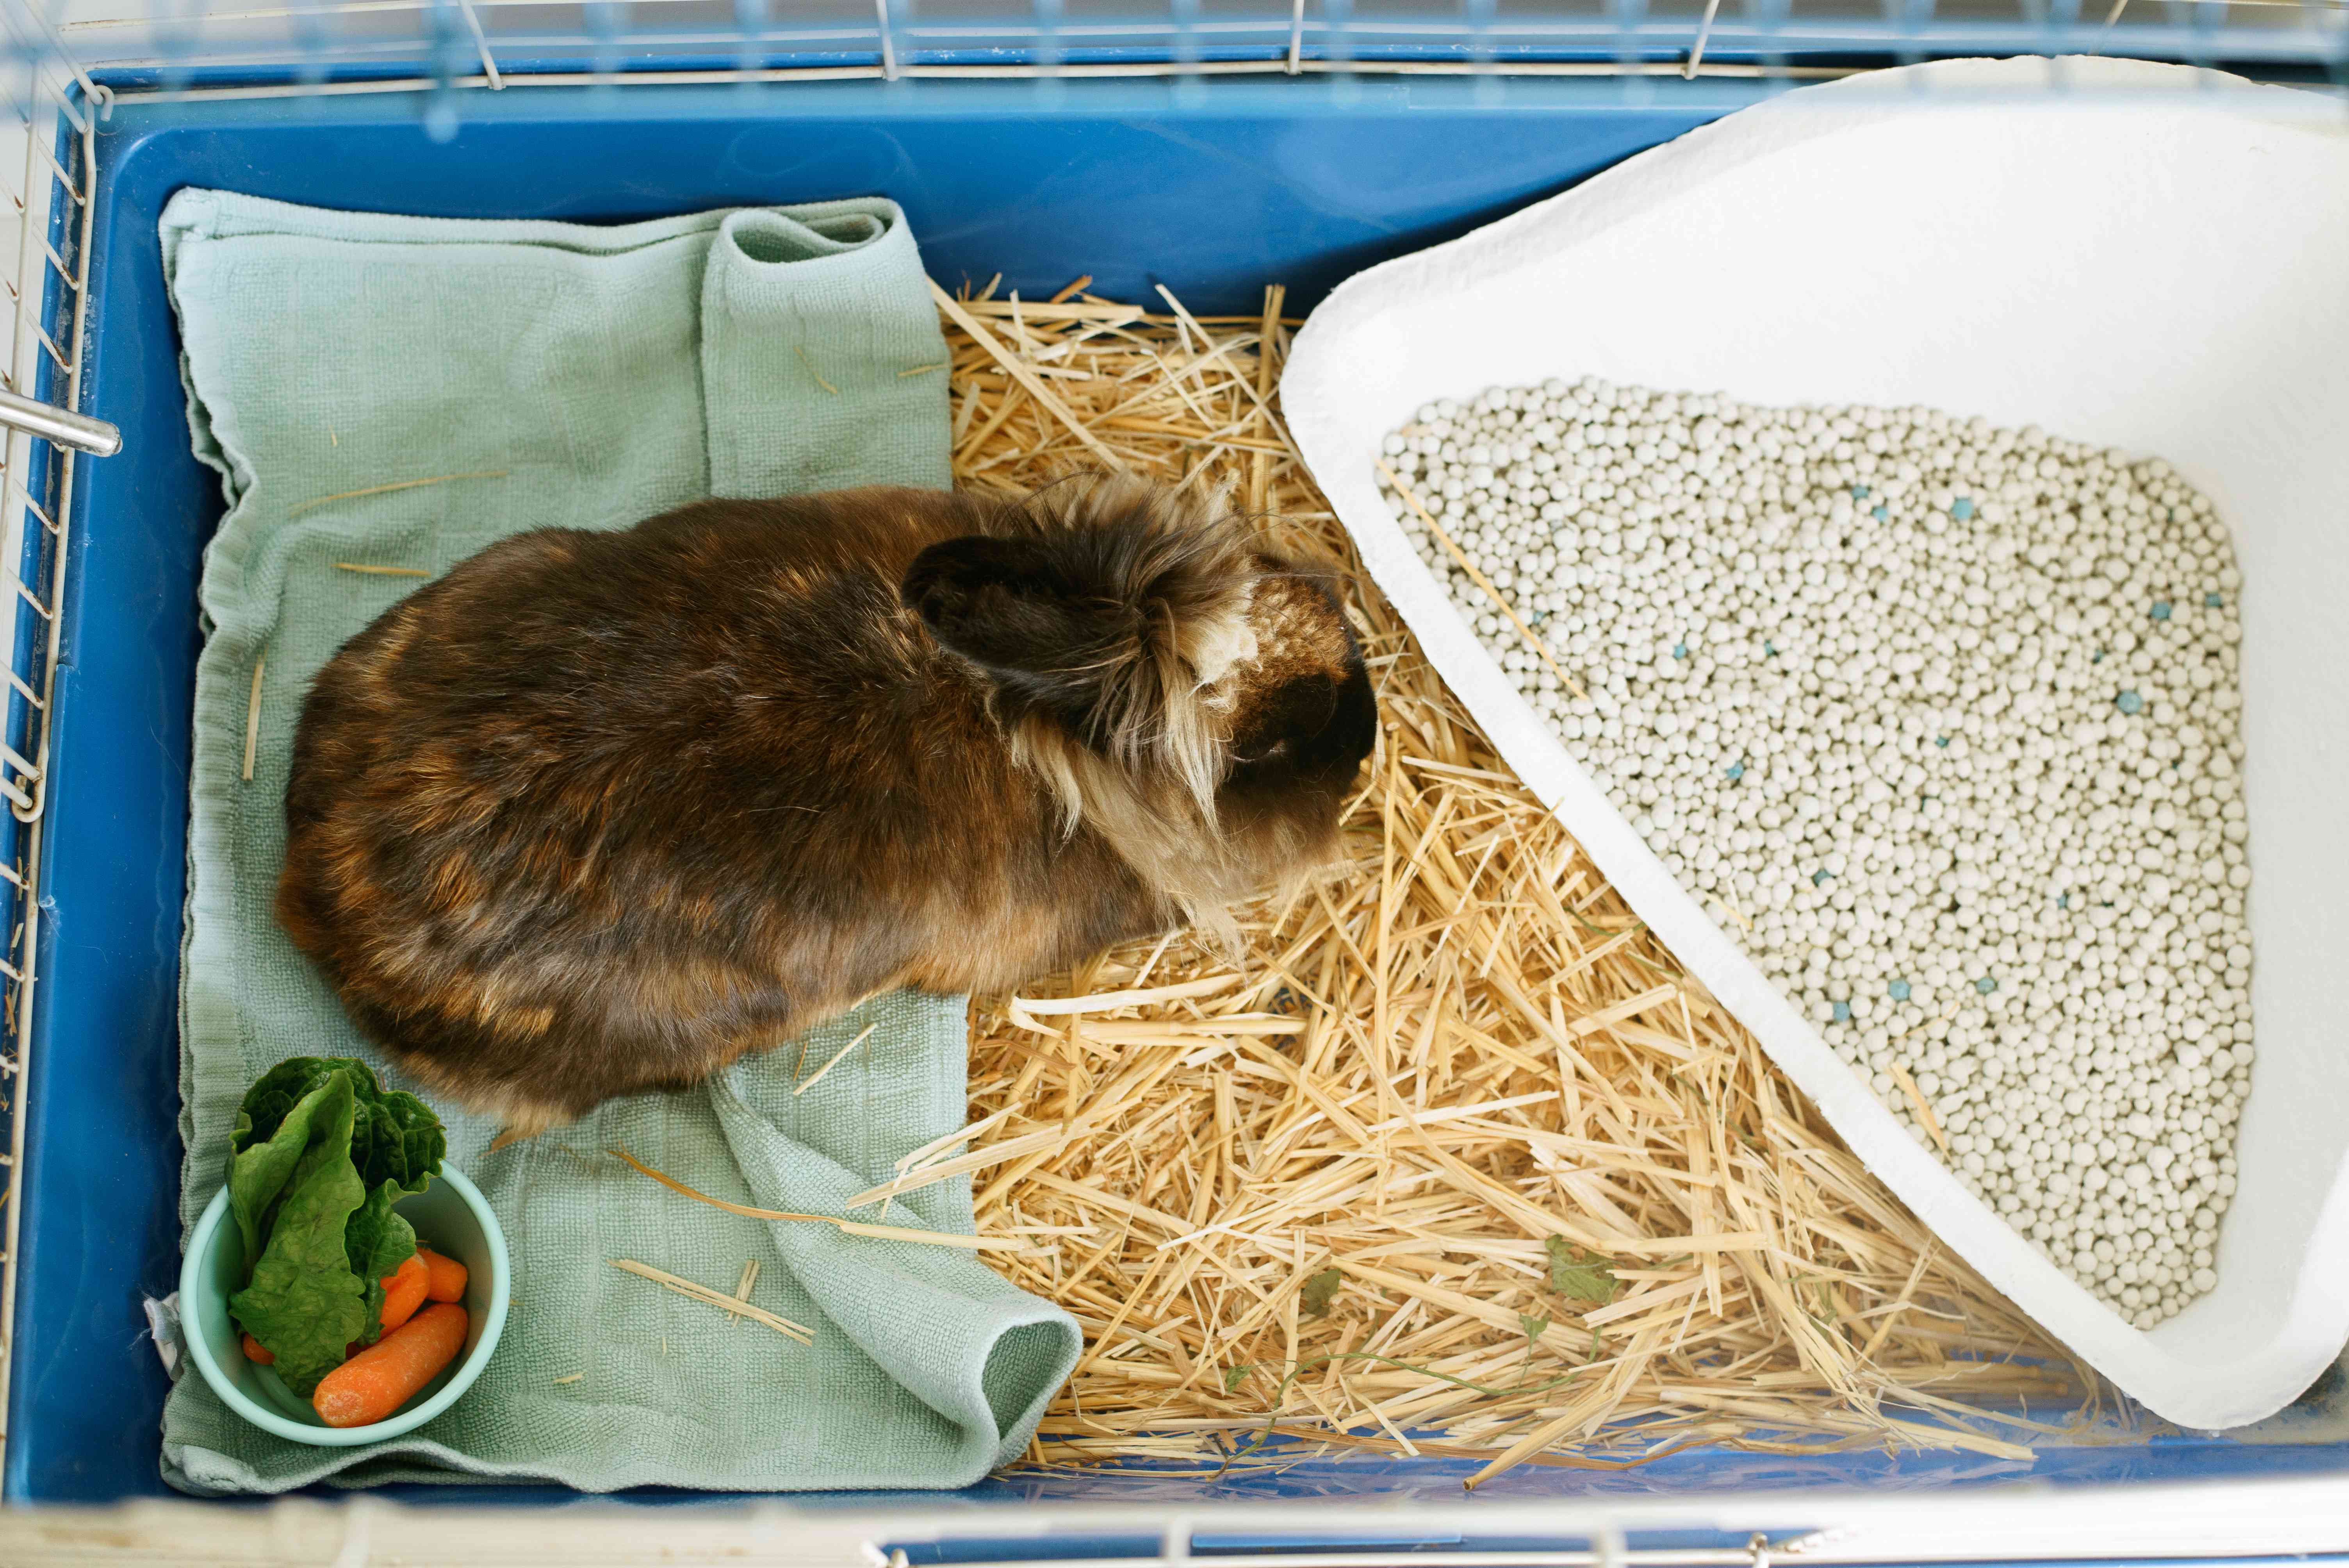 Brown and tan rabbit in cage in between litter pan and small bowl of carrots and lettuce